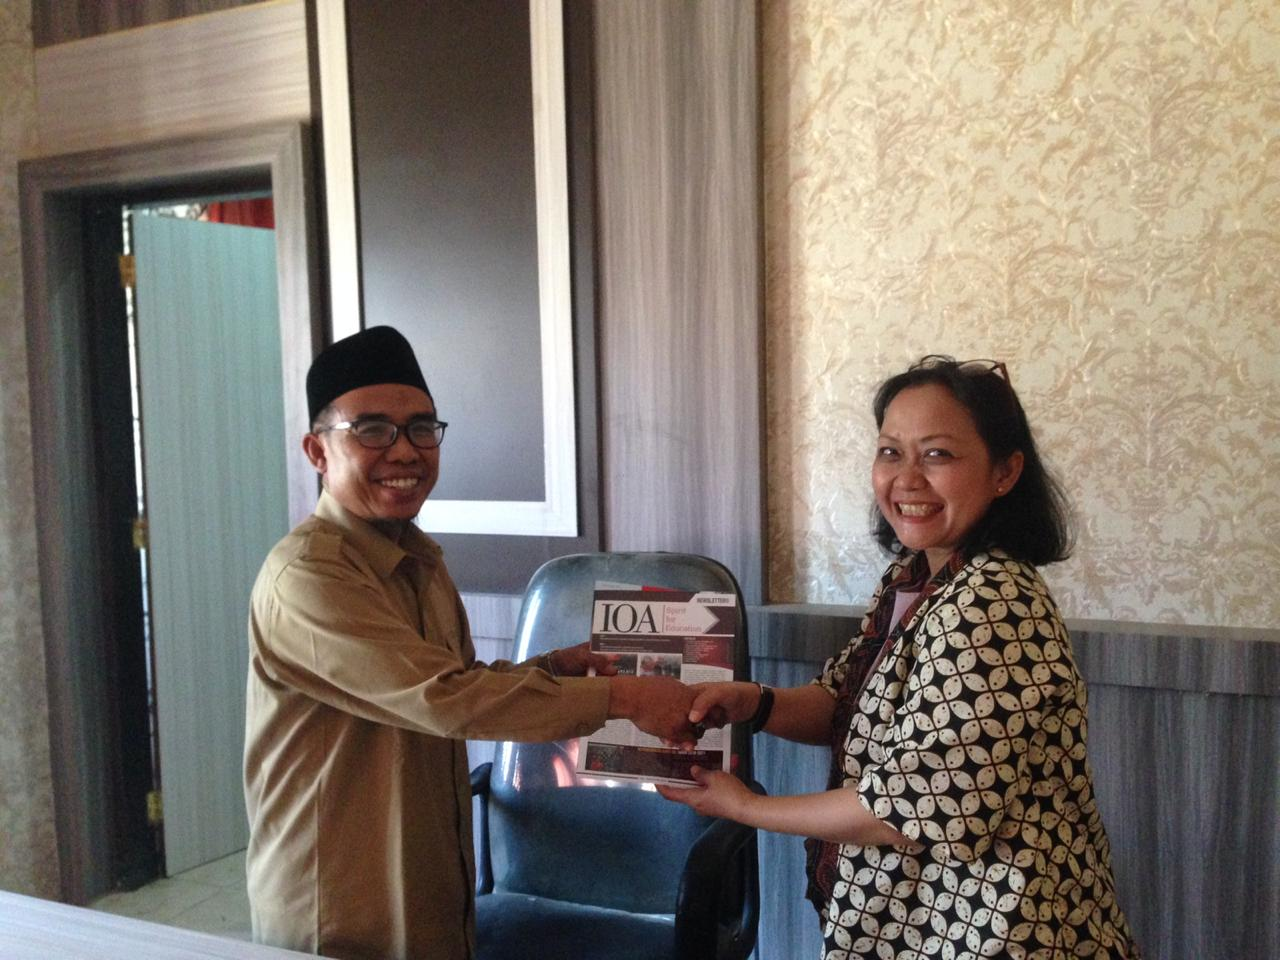 IOA EXECUTIVE DIRECTOR'S VISIT TO NORTH LOMBOK